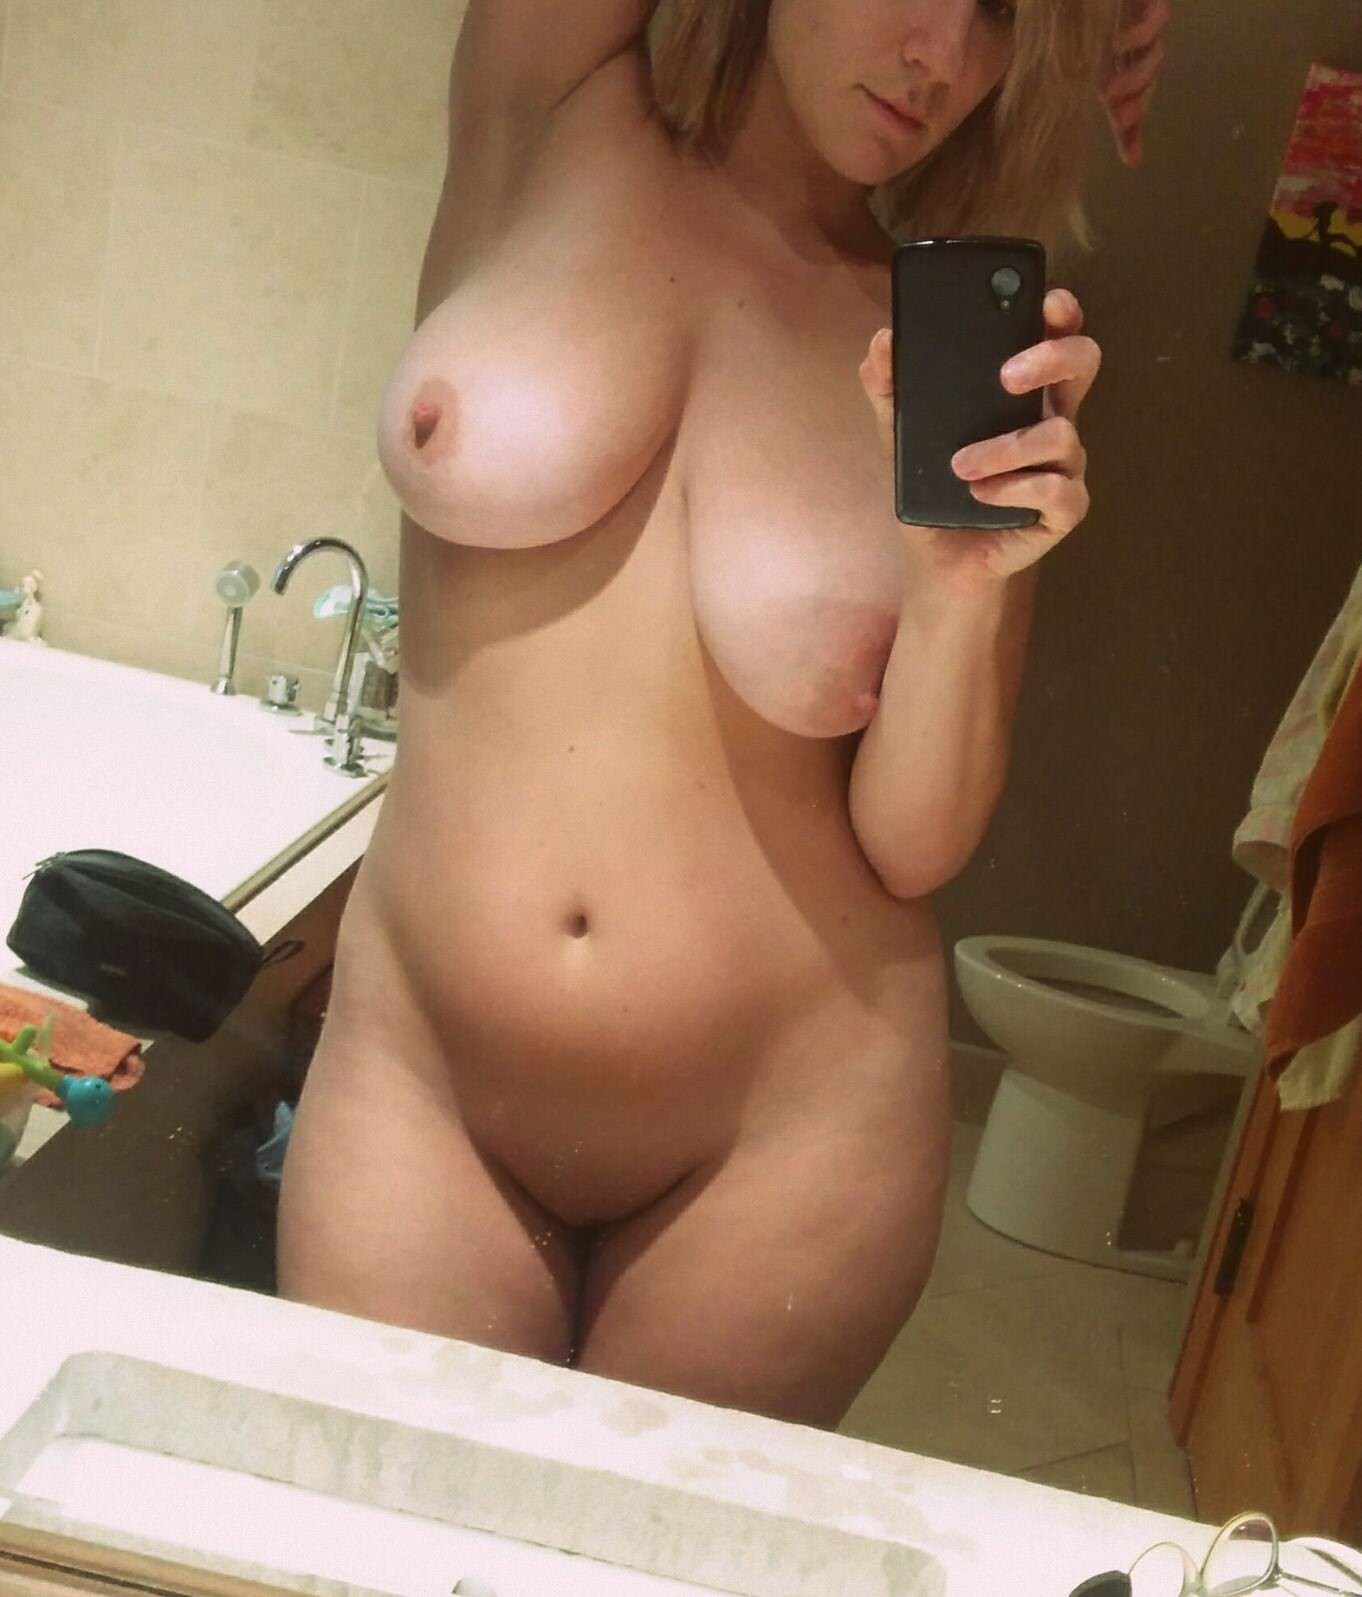 showing off my big tits mirror selfie add me on snapchat